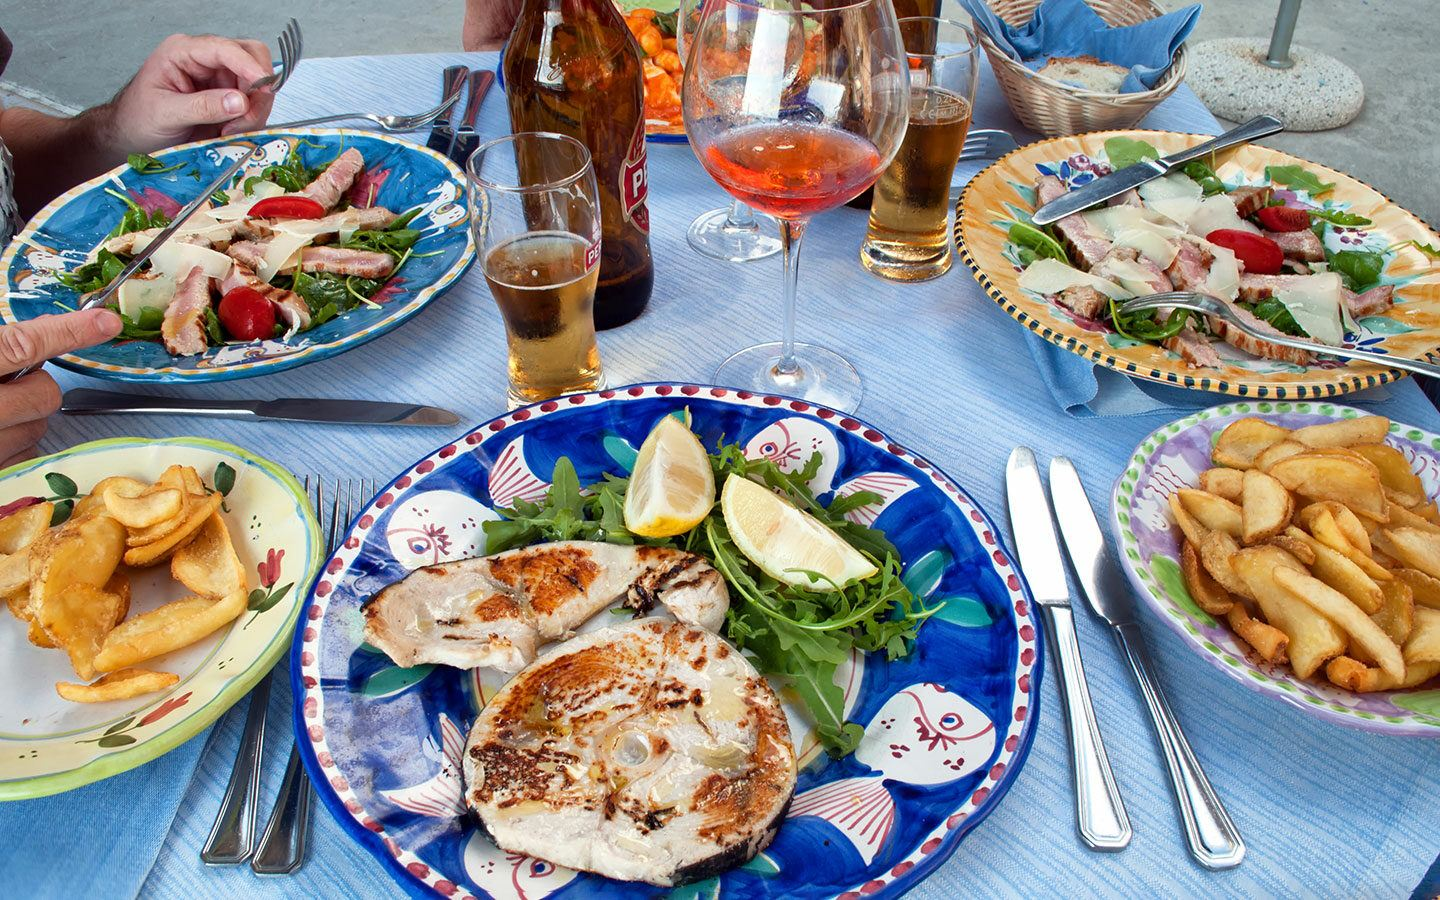 A local feast of food in Sorrento, Italy